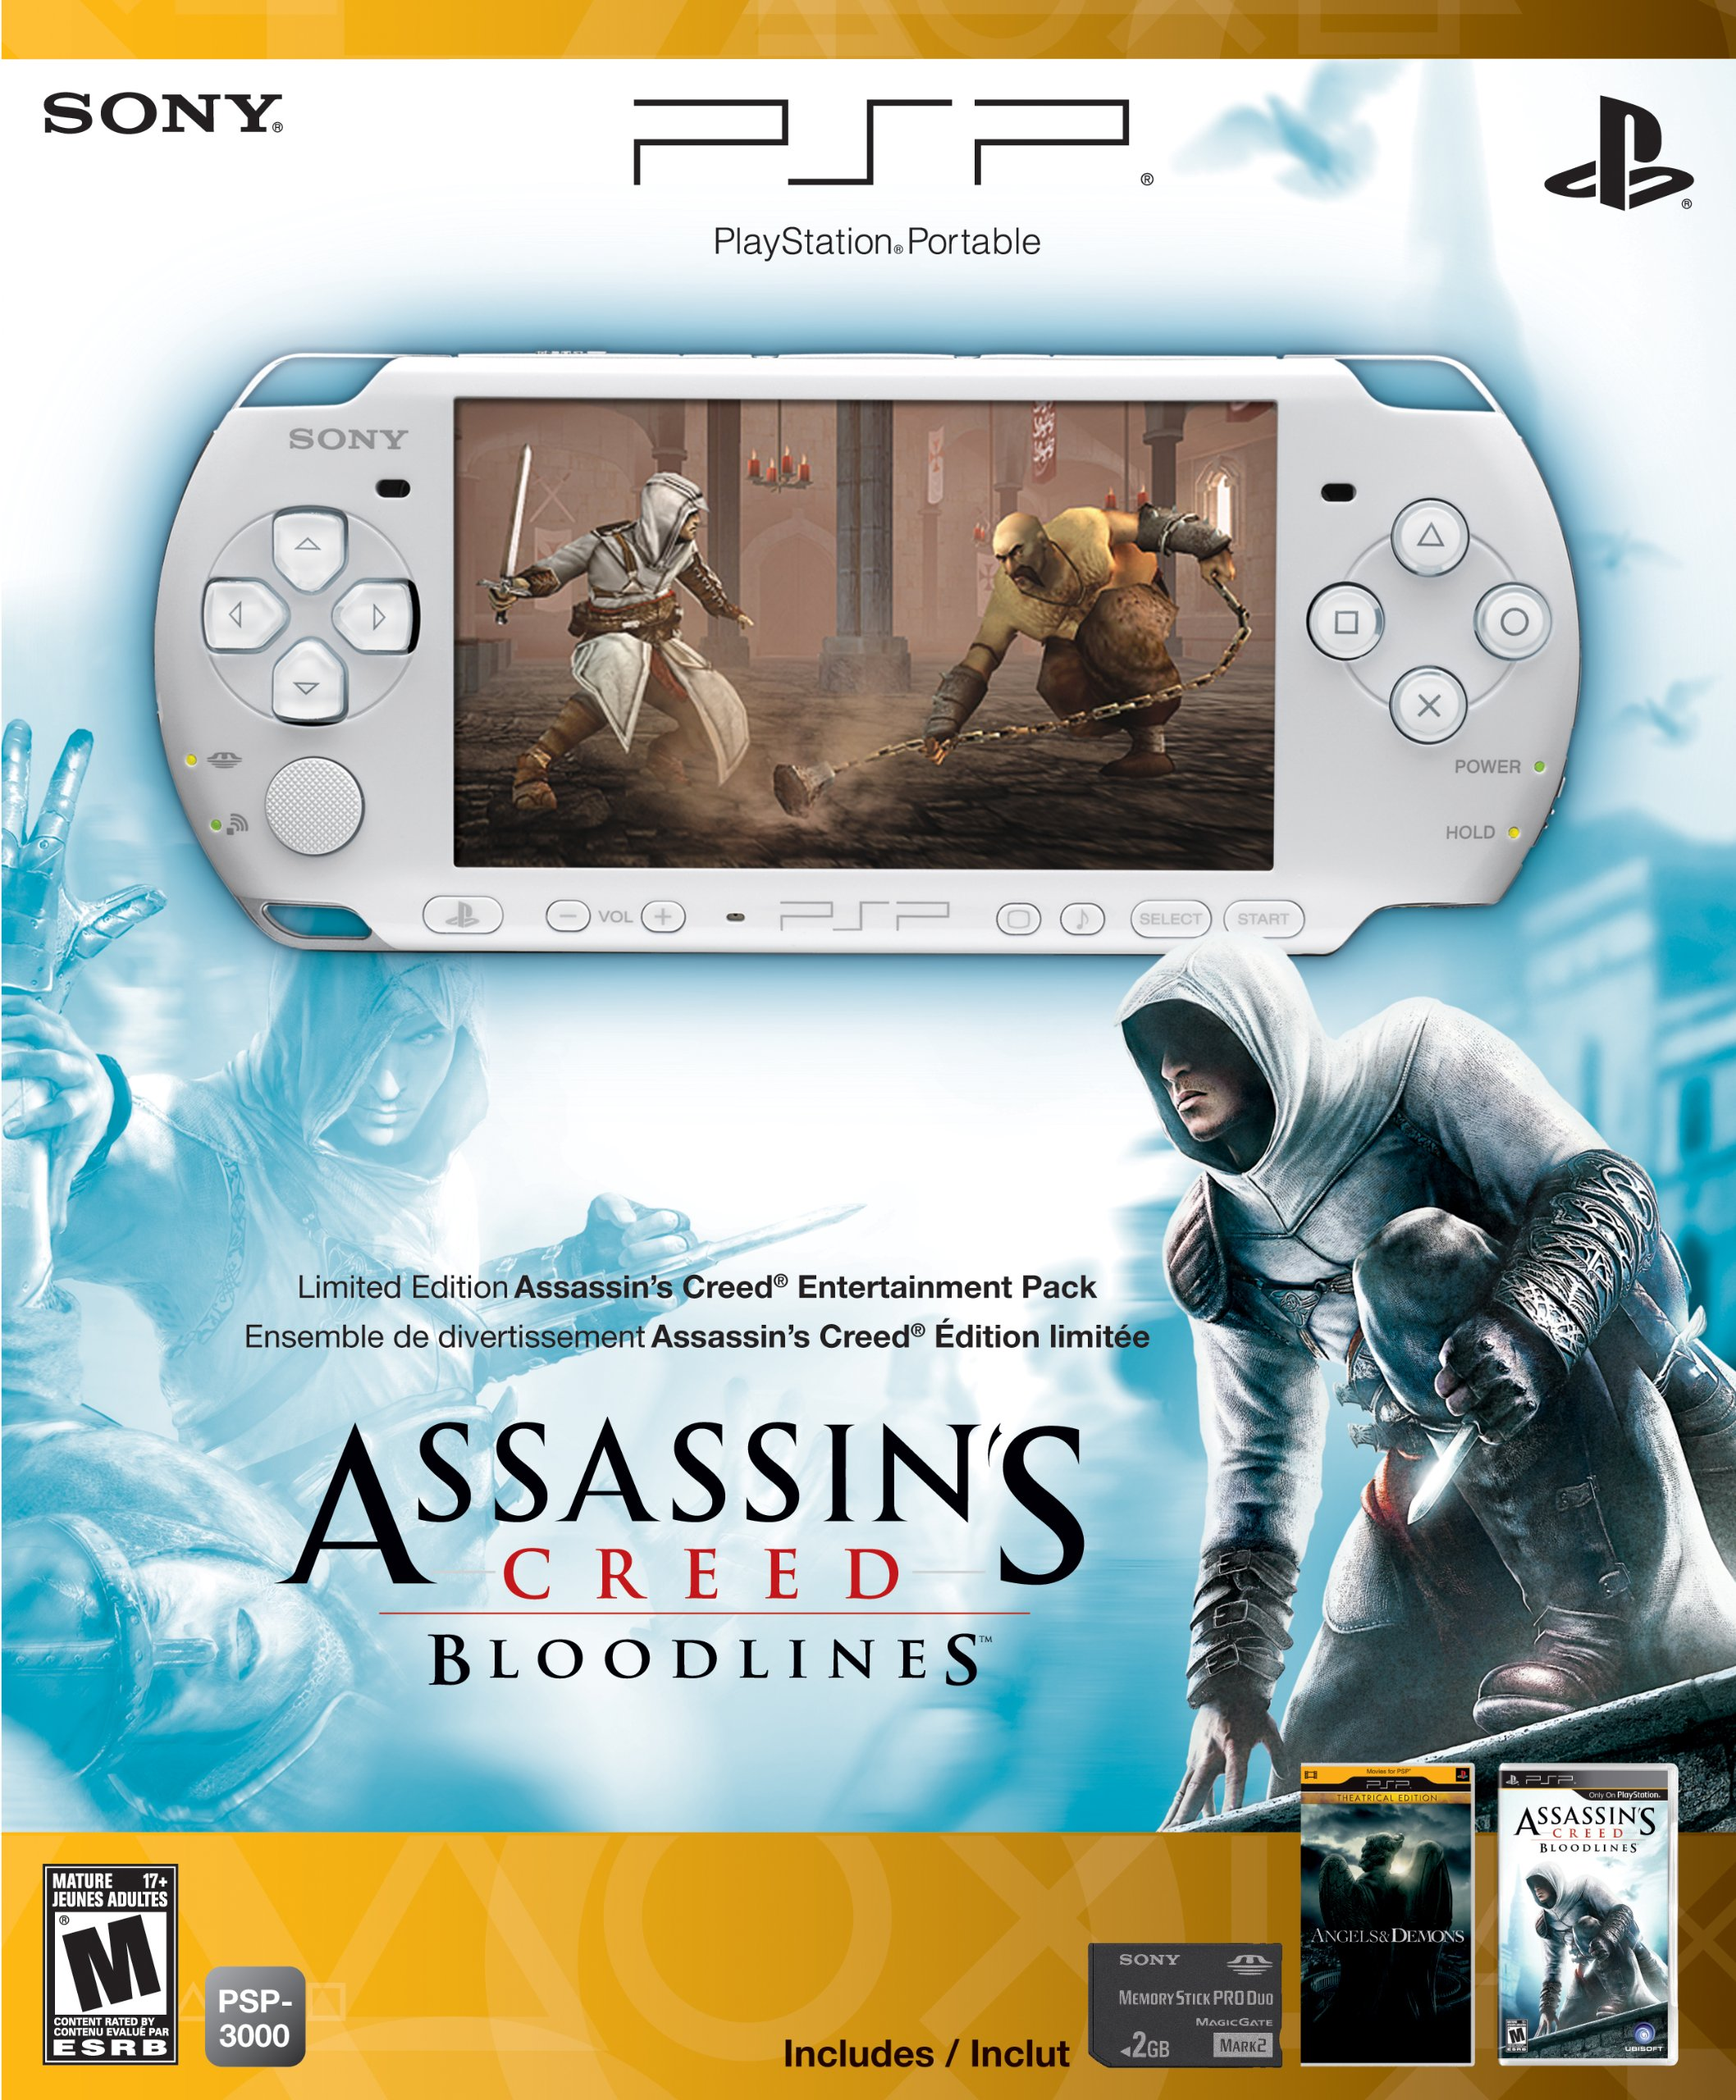 PSP 3000 Limited Edition Assassin's Creed: Bloodlines Entertainment Pack- White by Sony